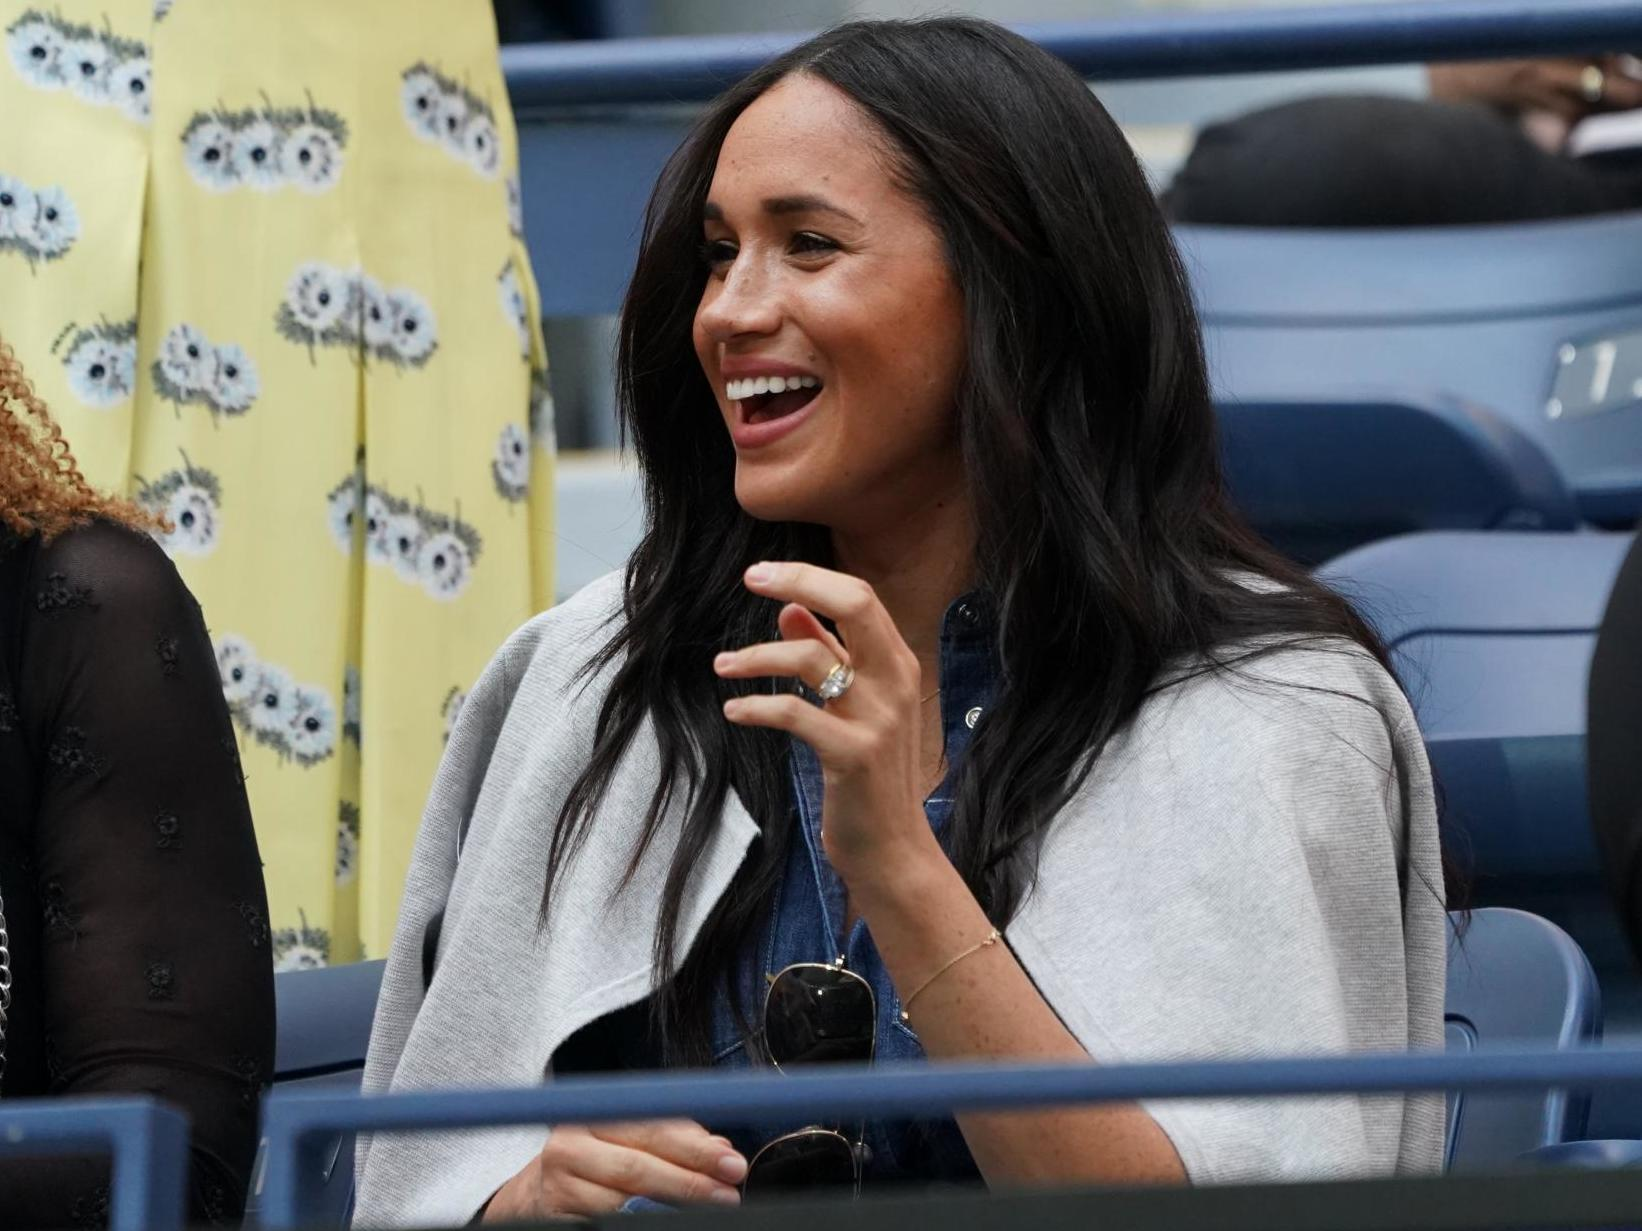 Meghan Markle supports Serena Williams in the US Open Finals wearing all-American denim dress